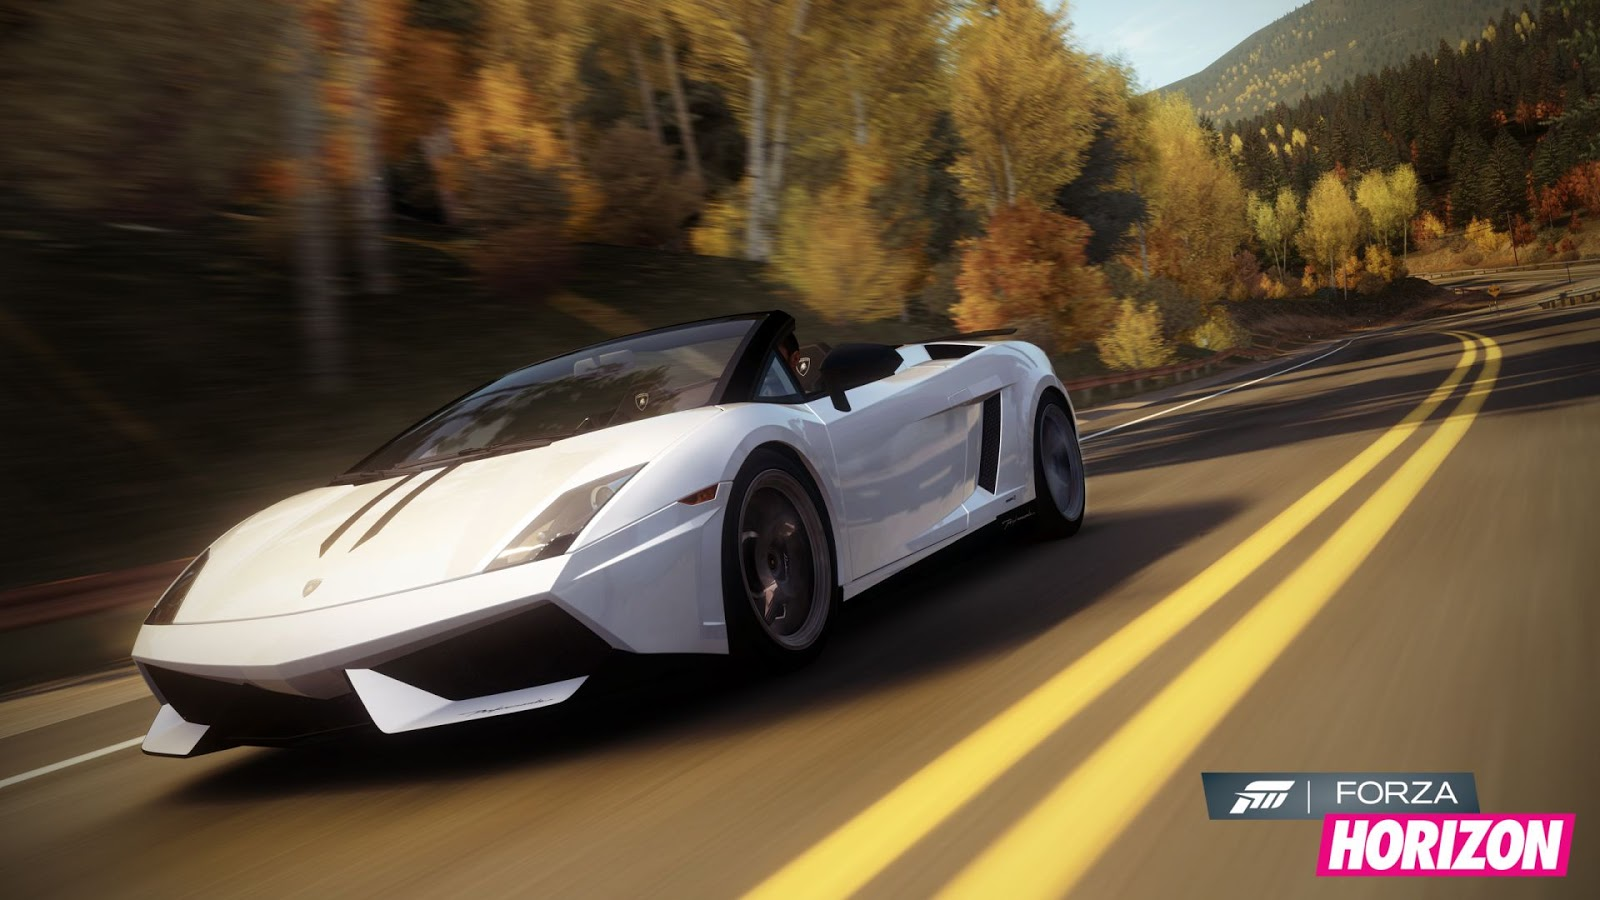 Forza Horizon HD & Widescreen Wallpaper 0.0757104447915946